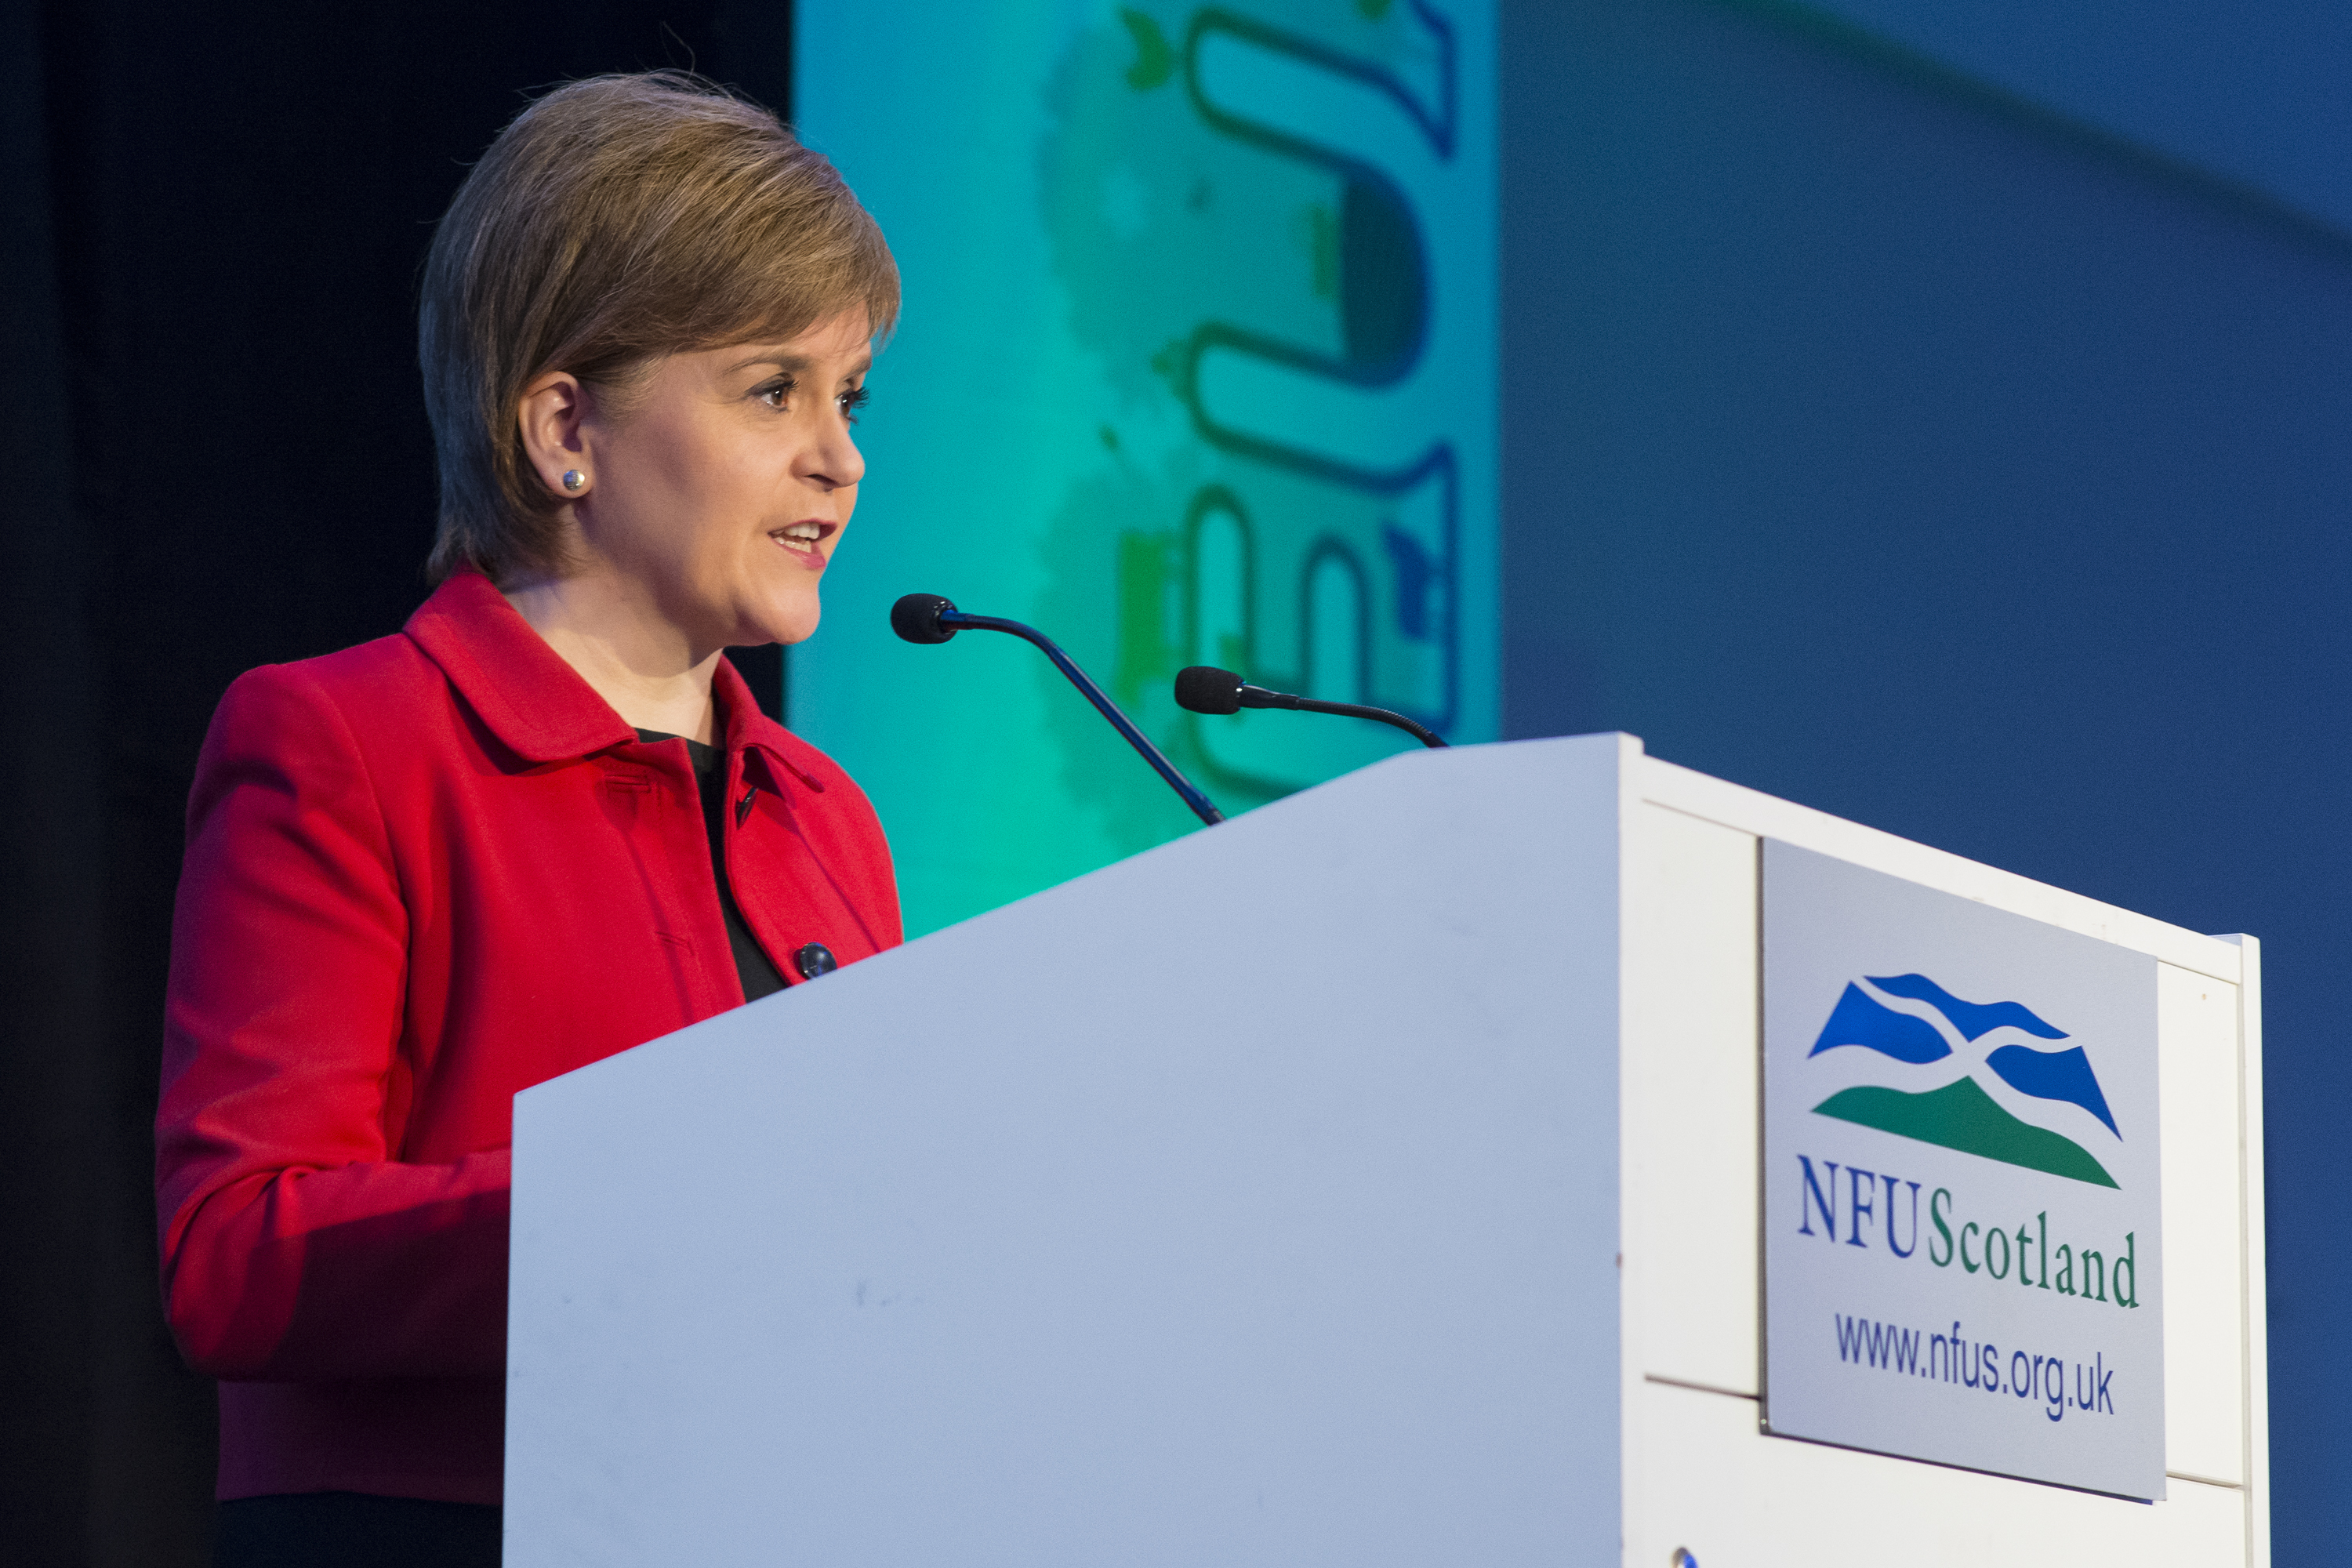 The First Minister's speech oozed support for the farming industry